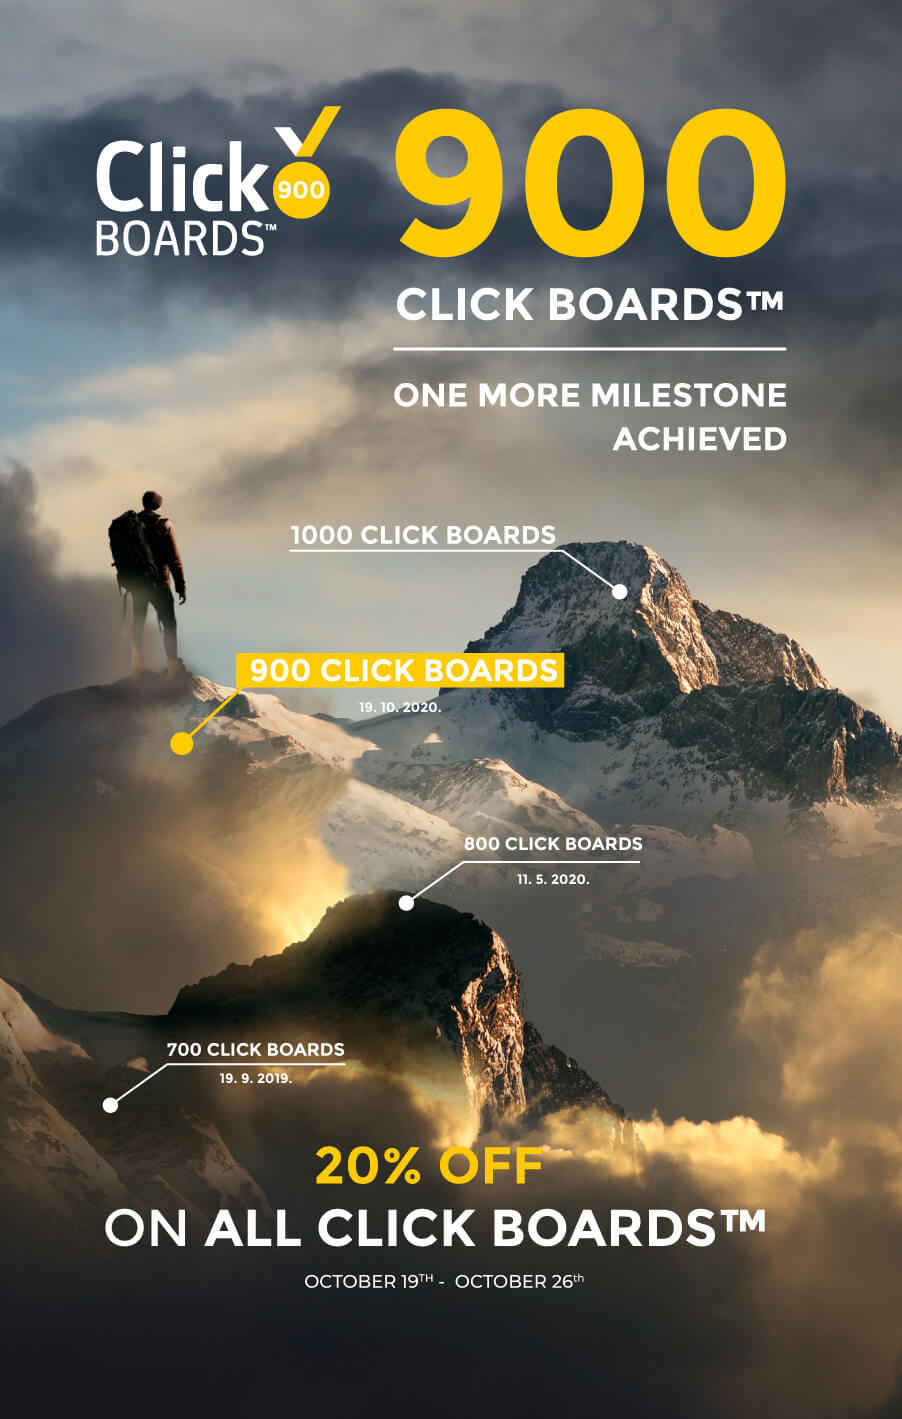 We proudly announce that we have released our 900th Click board™!